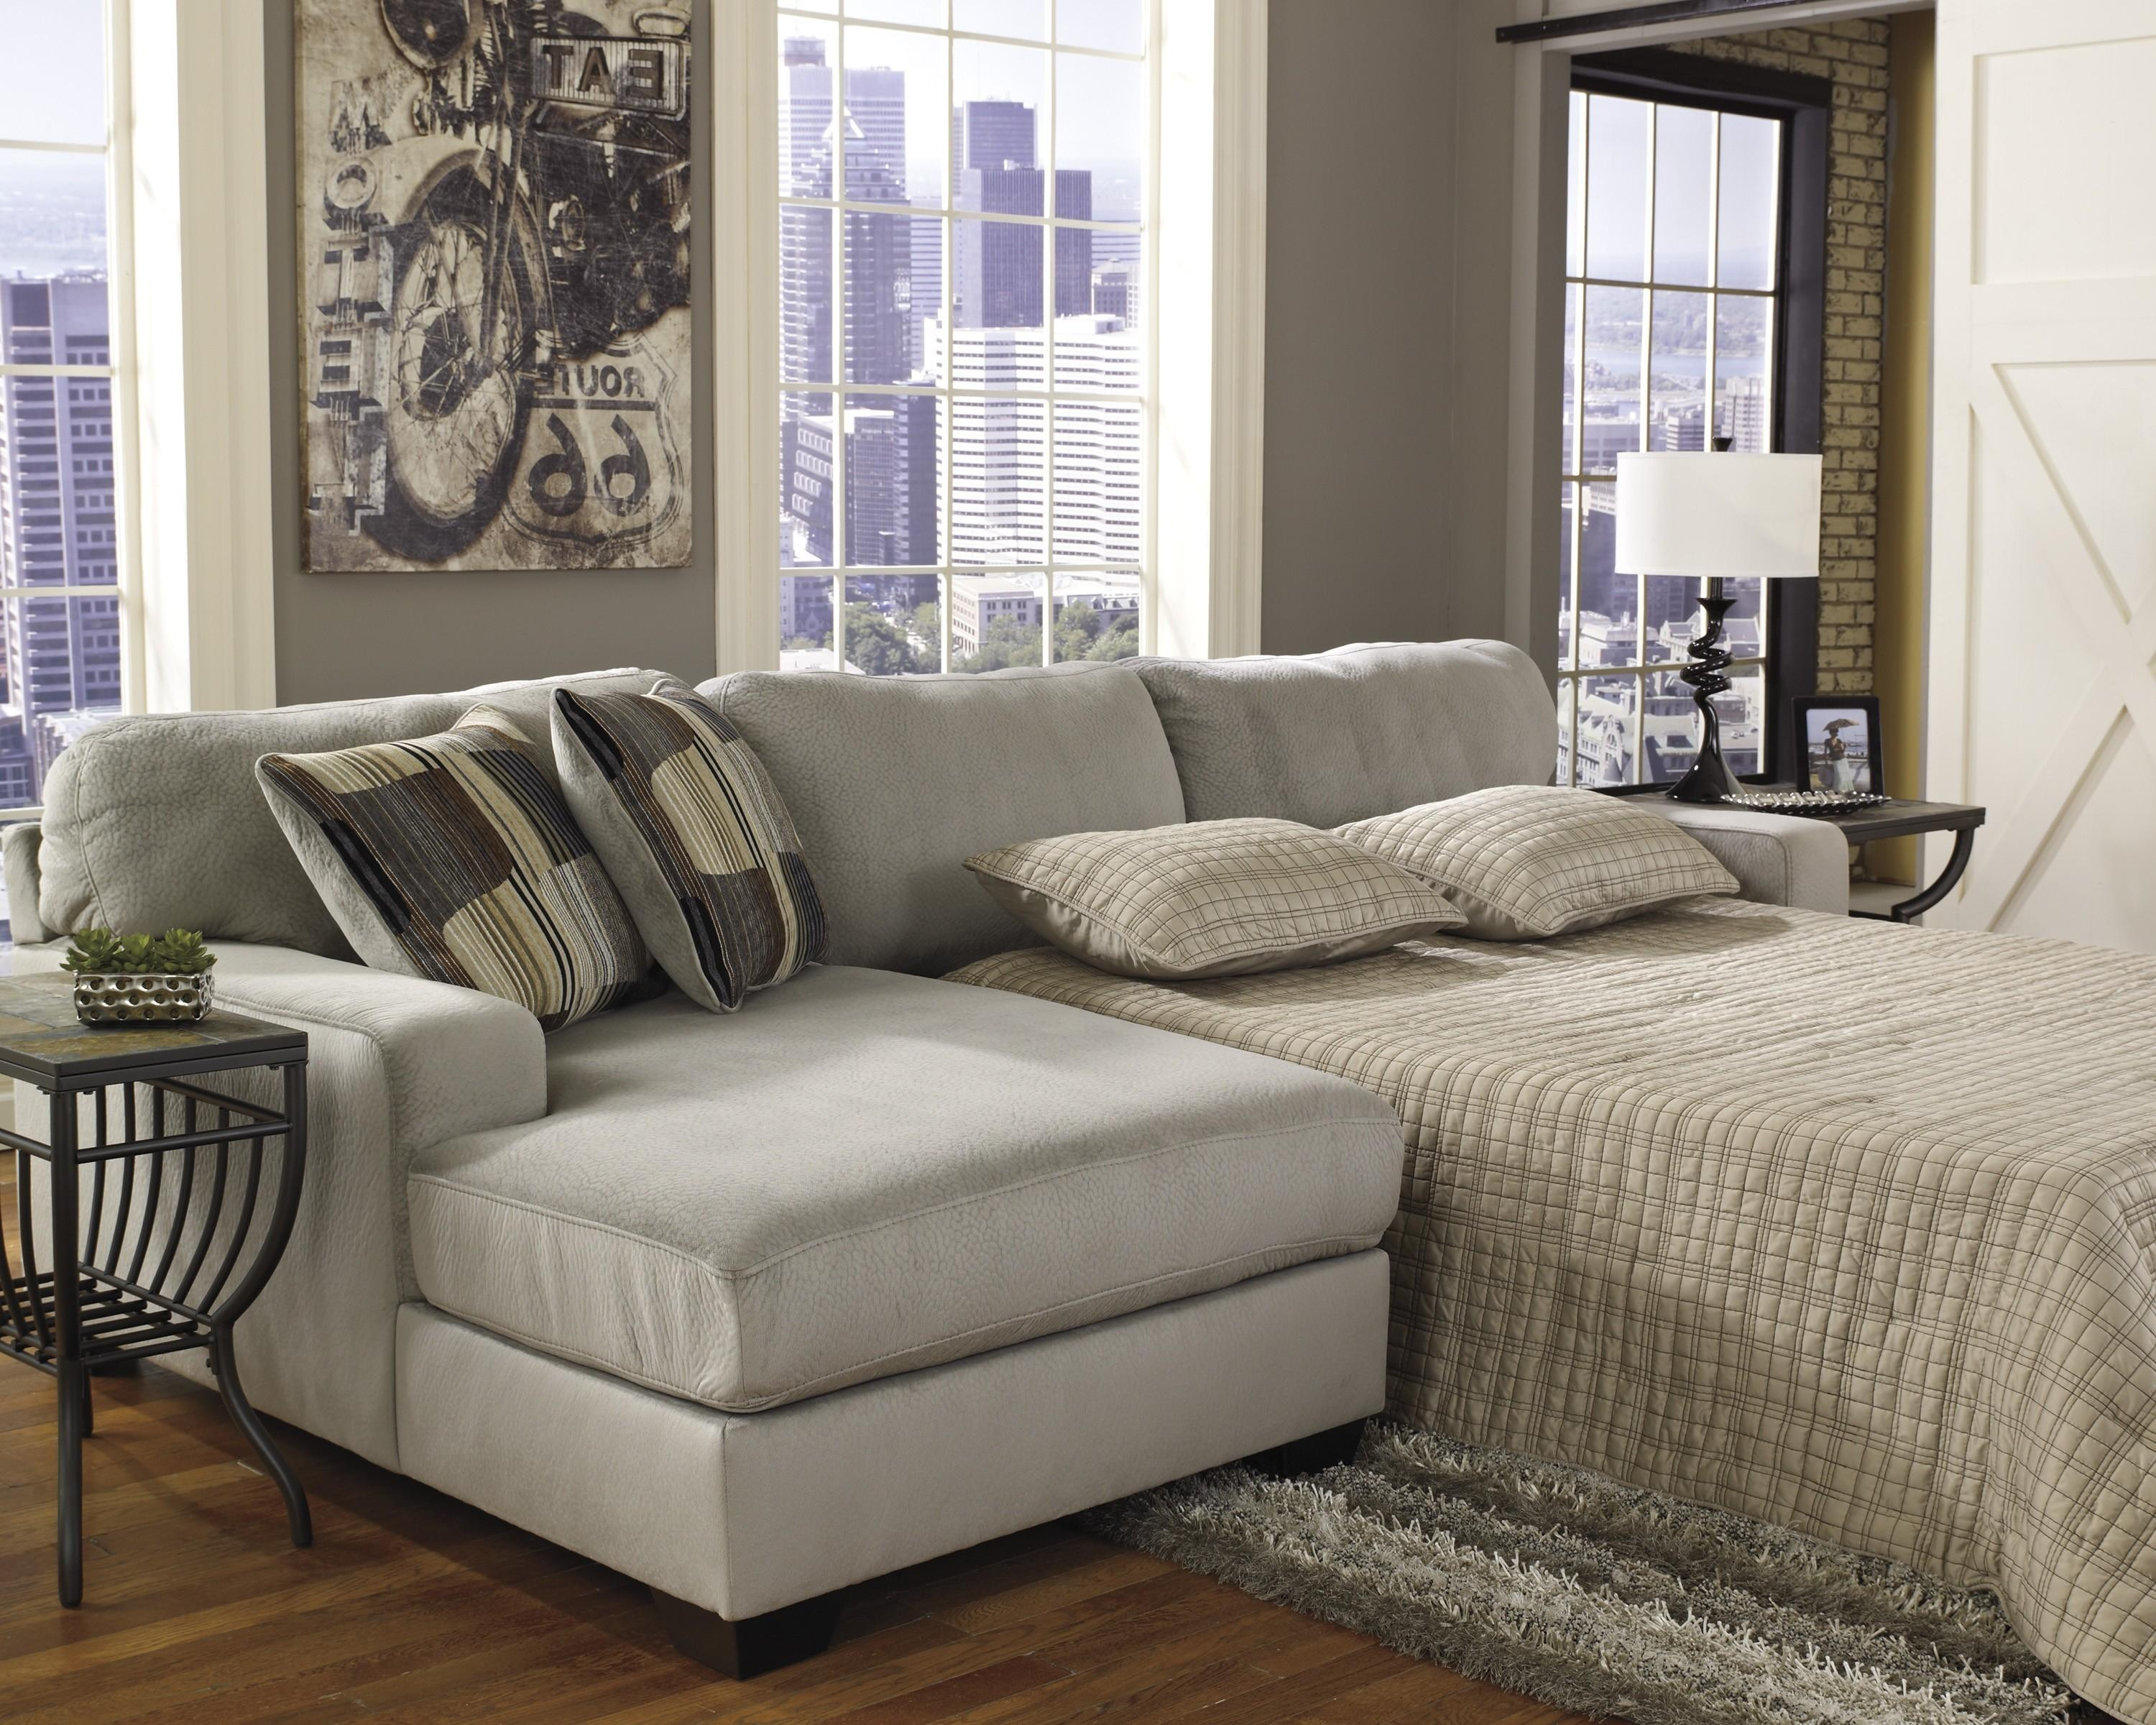 Interior: Luxury Oversized Sectional Sofa For Awesome Living Room Inside Oversized Sectional (Image 8 of 20)